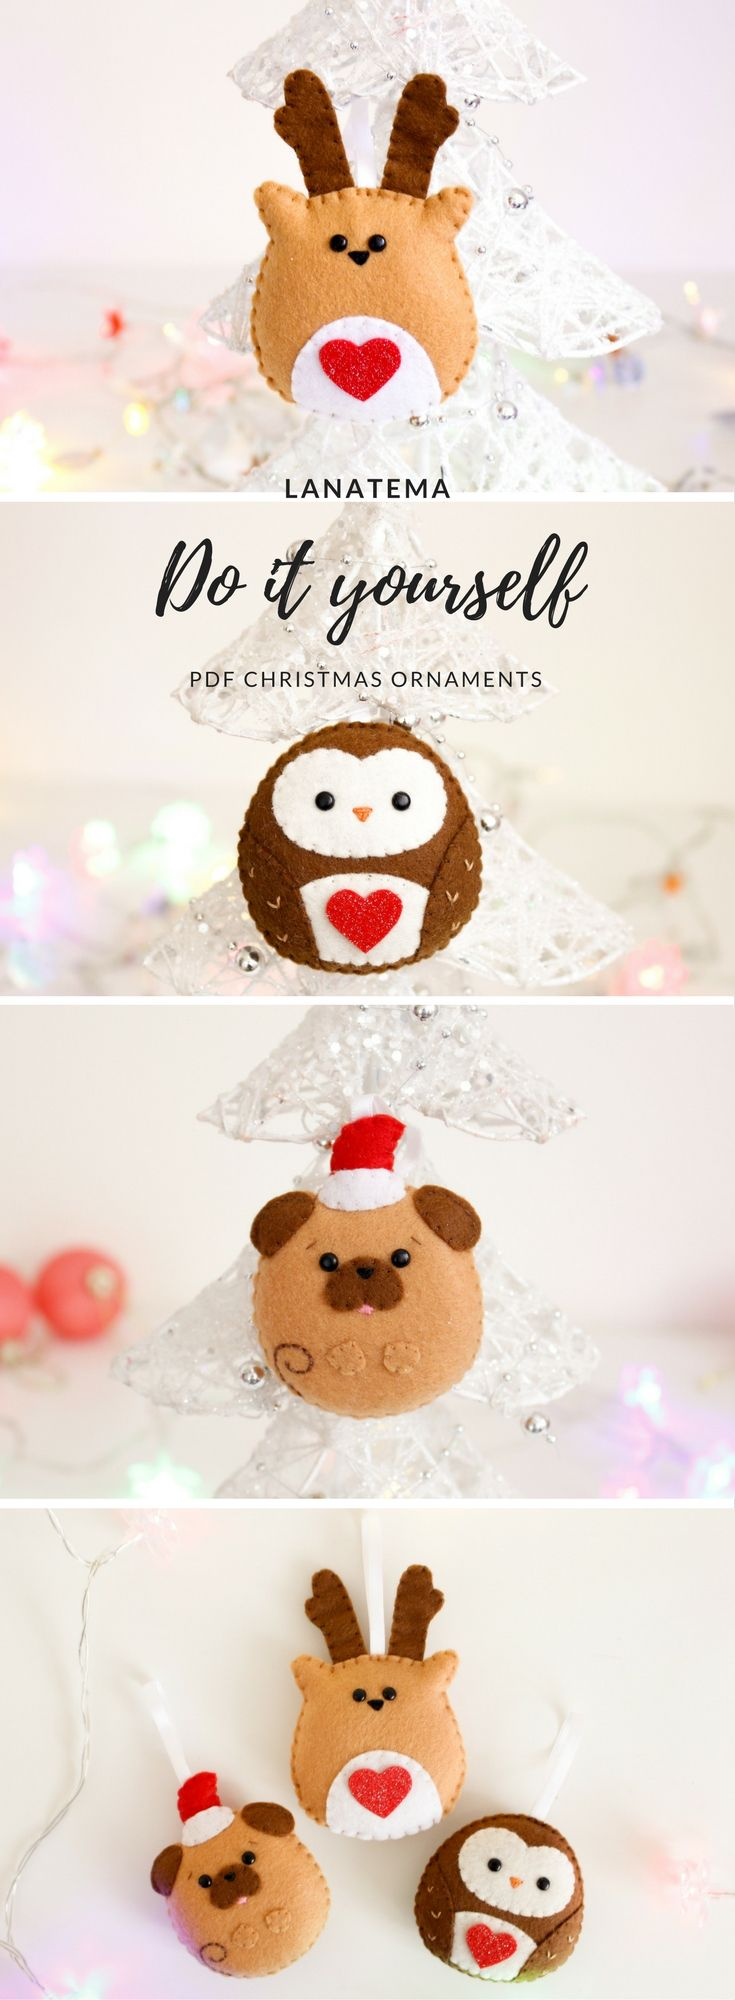 This PDF contains easy step by step instructions, lot of photos and the pattern ready to be printed and cut.ùPDF includes:-Printable pattern-Step by step photo tutorial-List of materials-Stitch guide